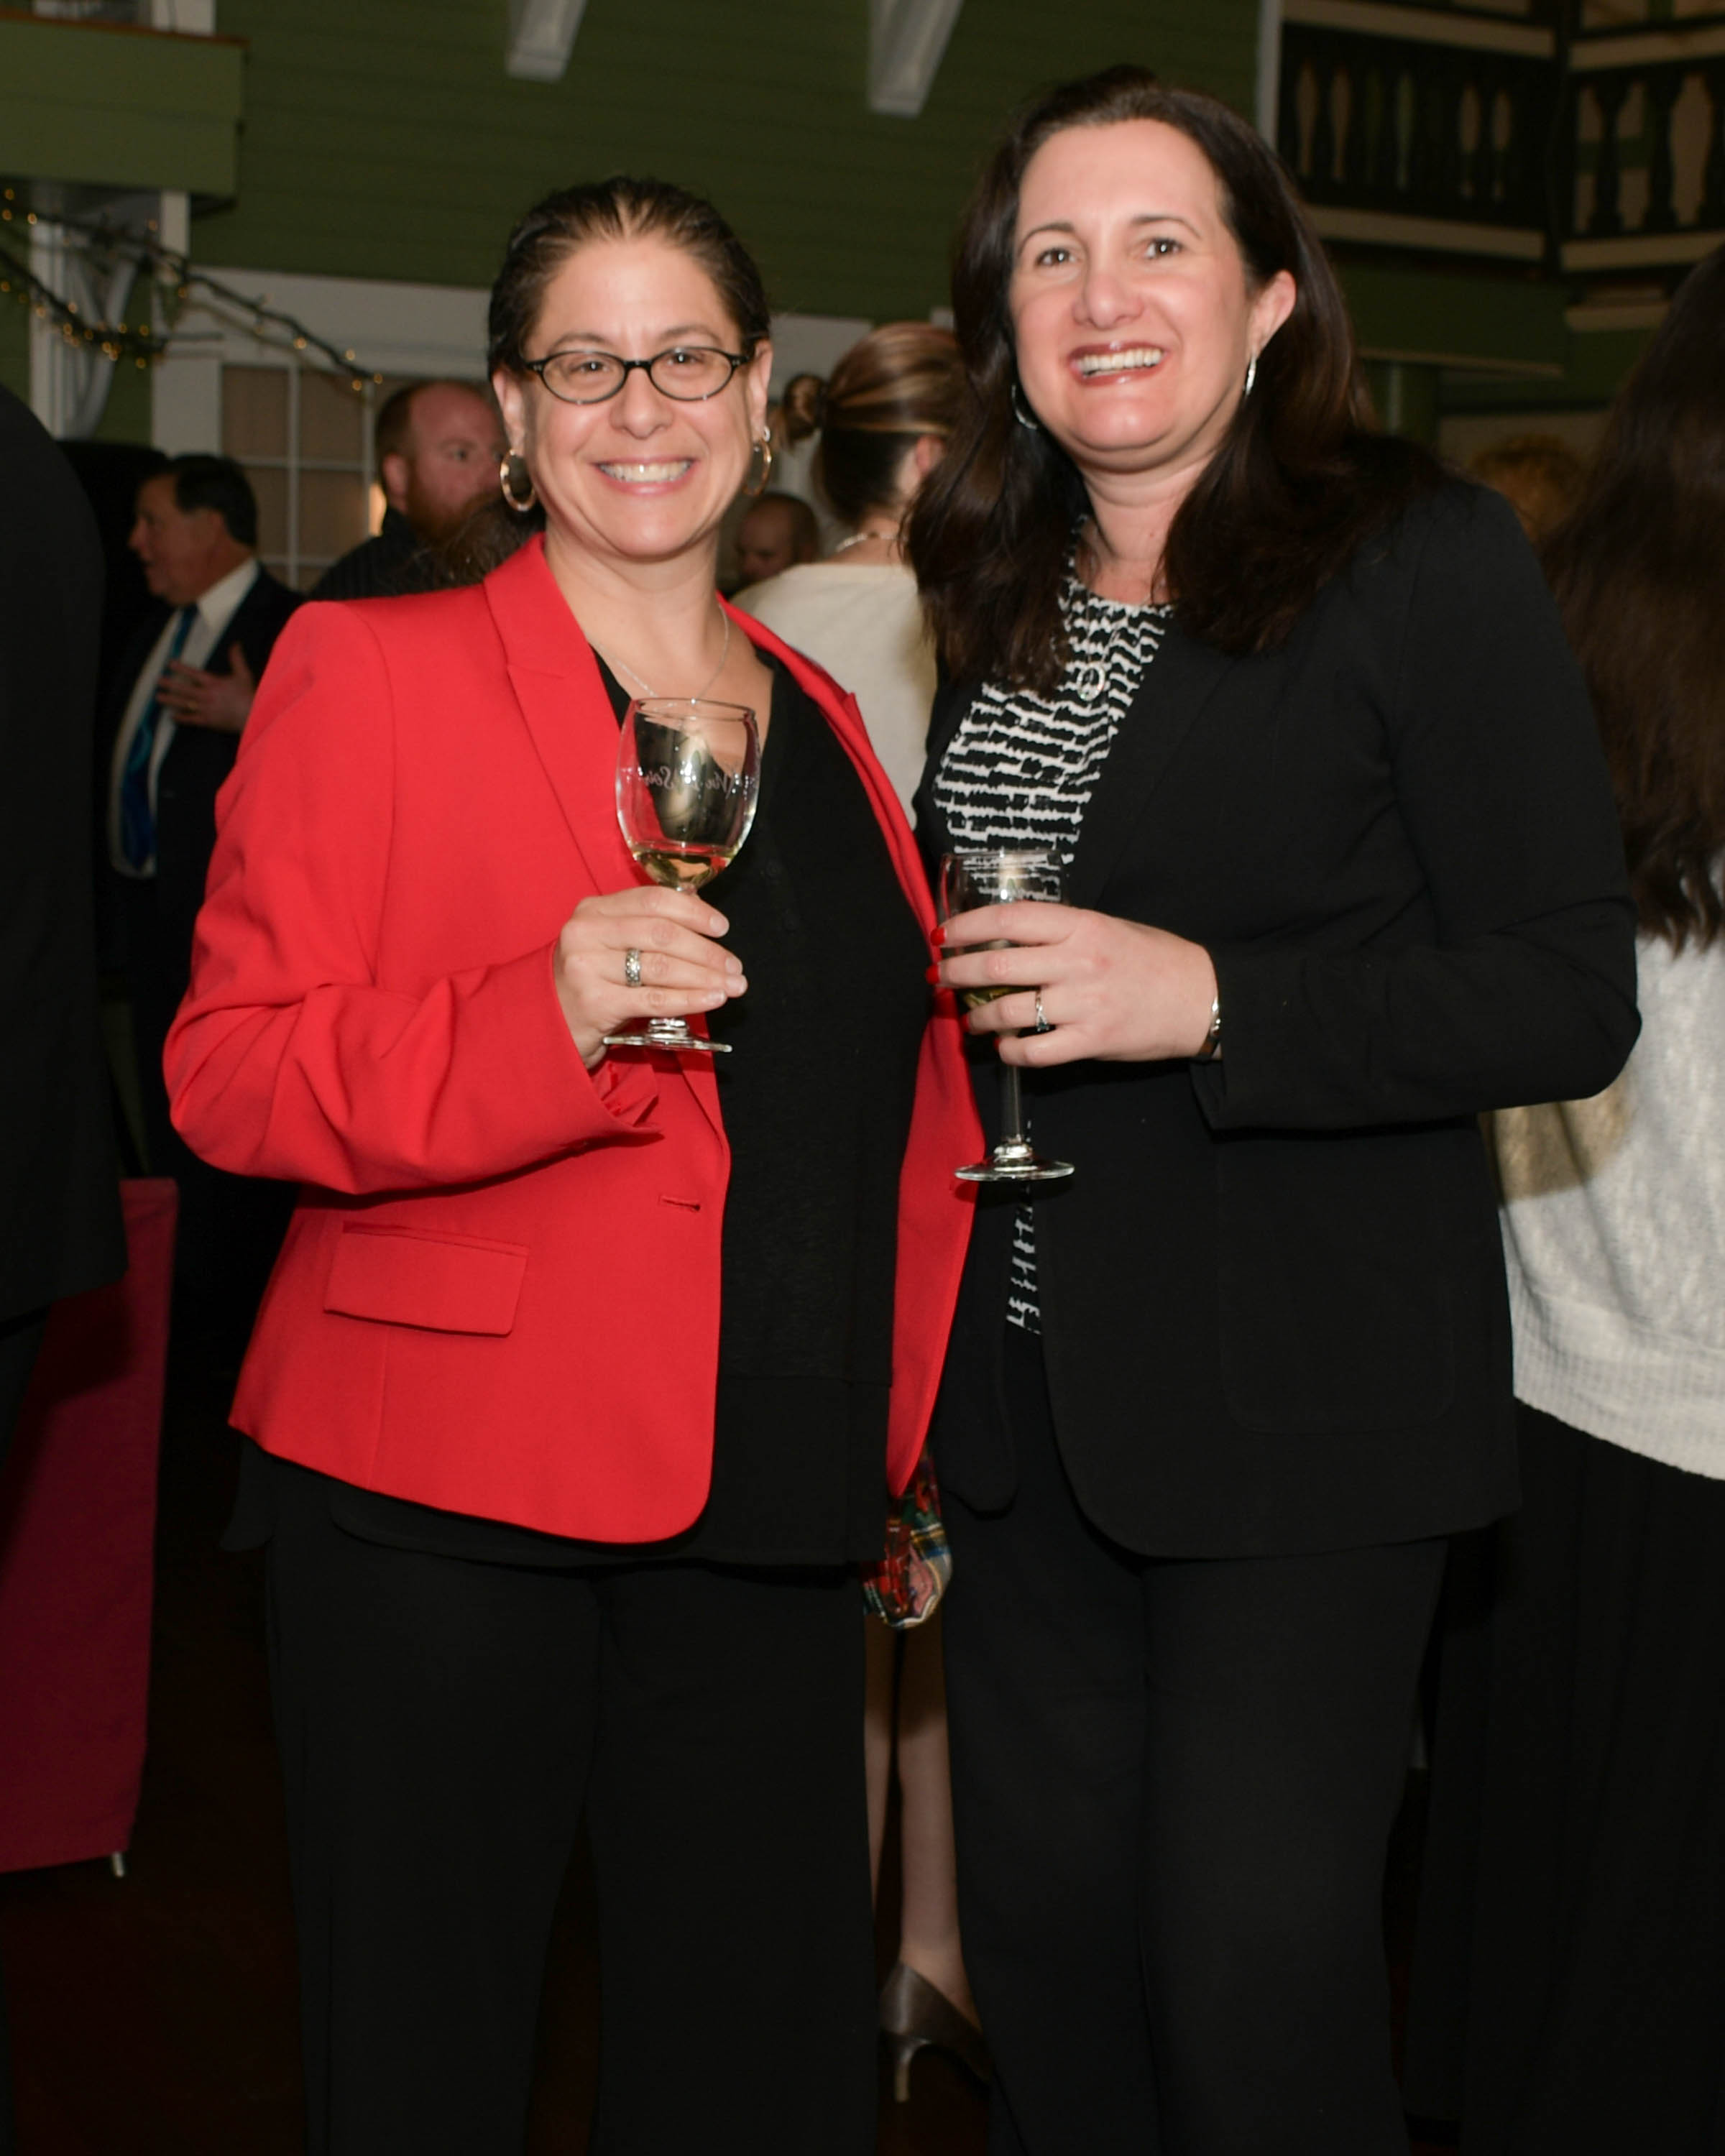 Vin Le Soir to benefit AIM Services, Inc. two women with wine at AIM event